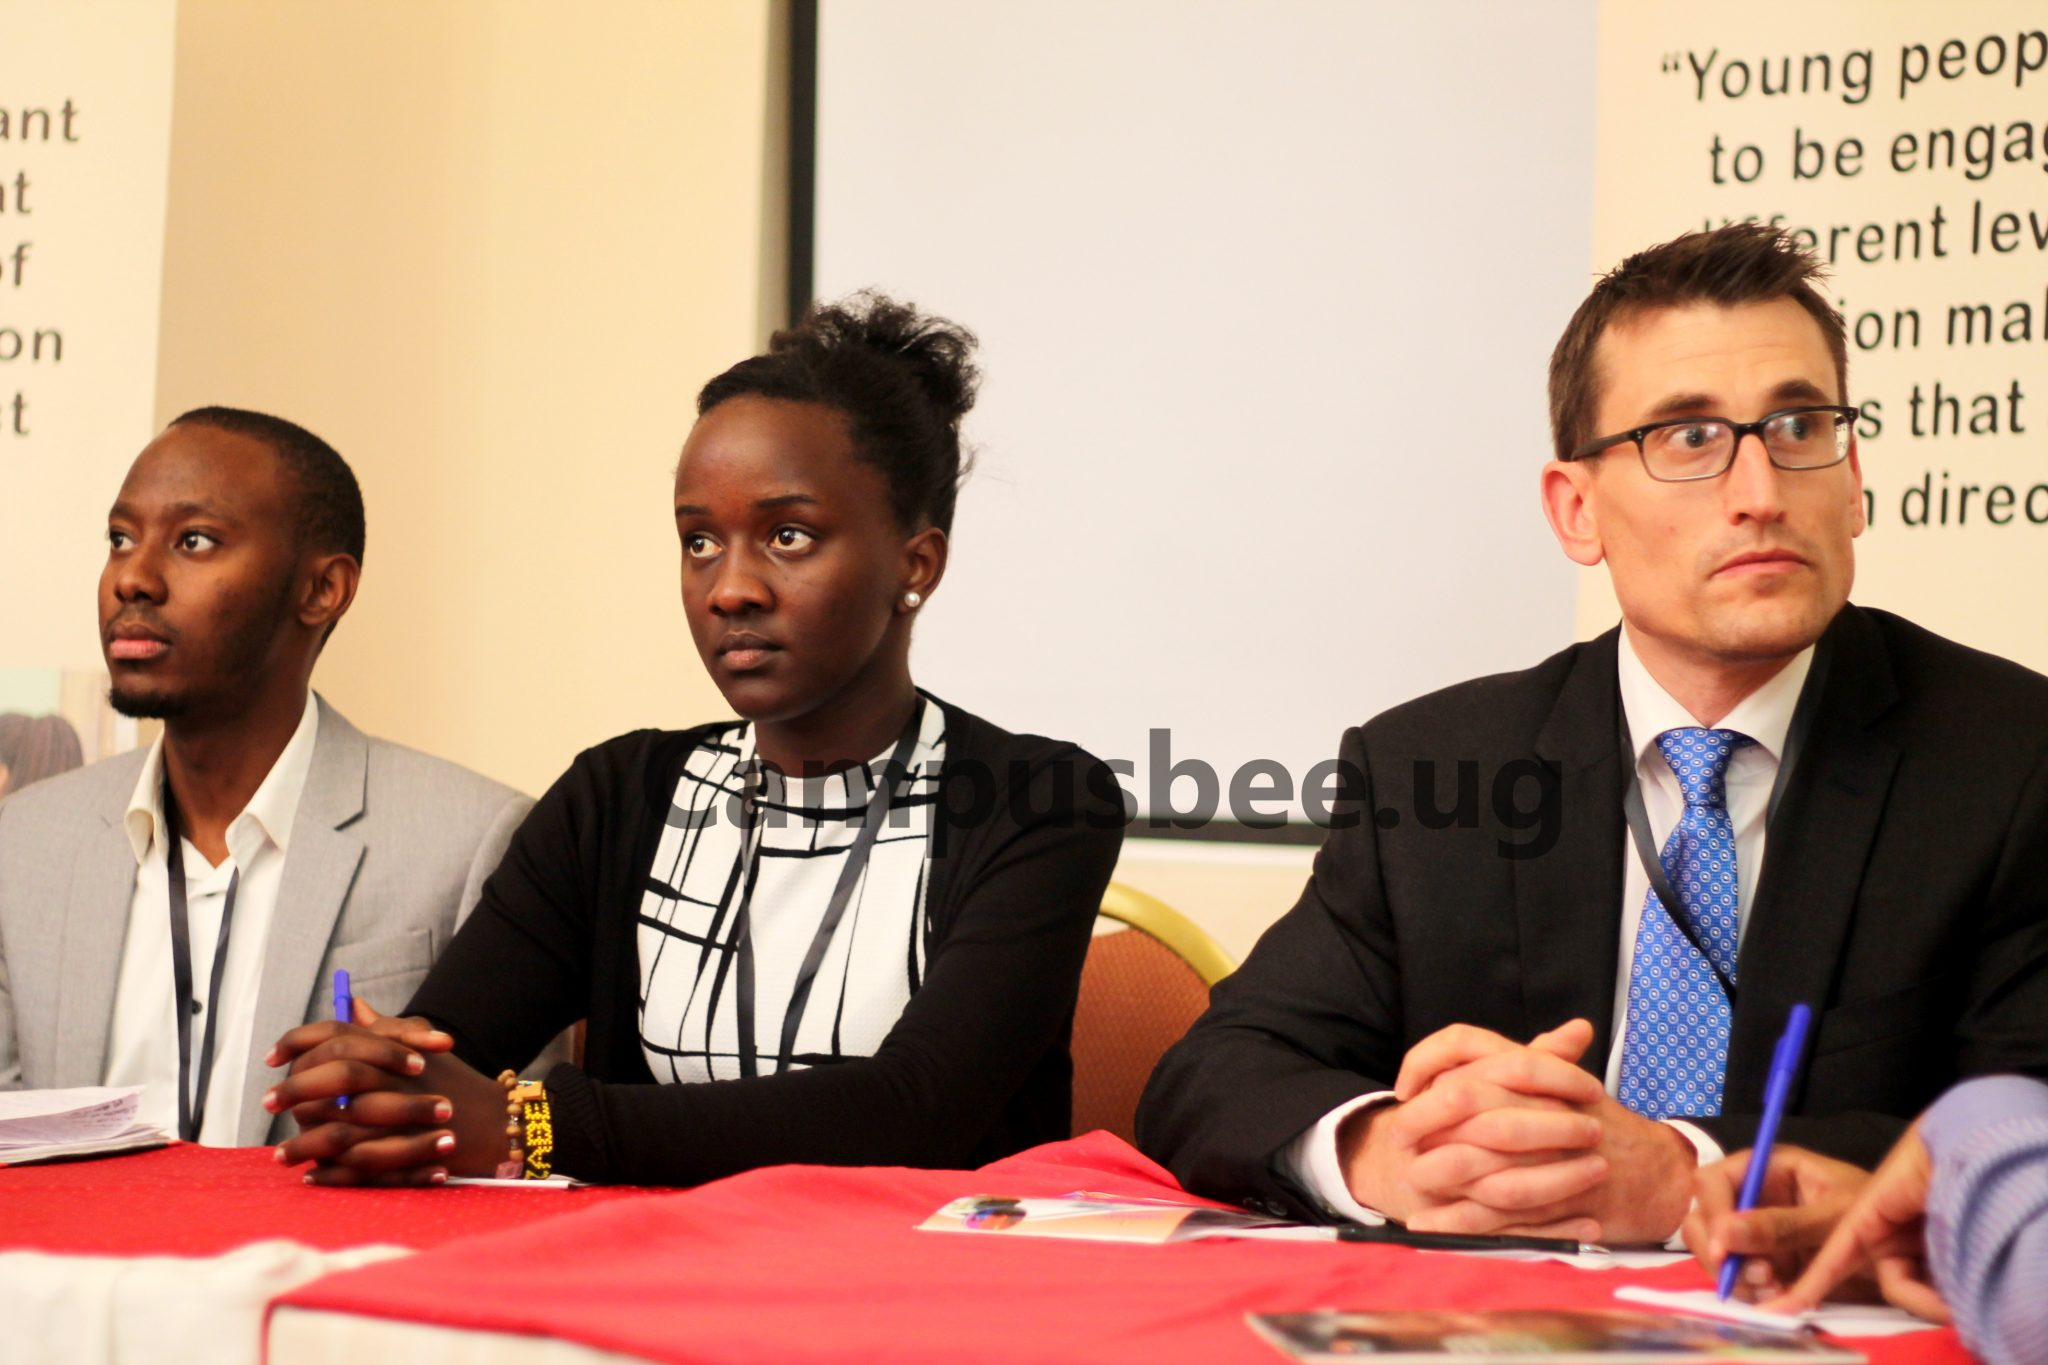 Some of the panelists